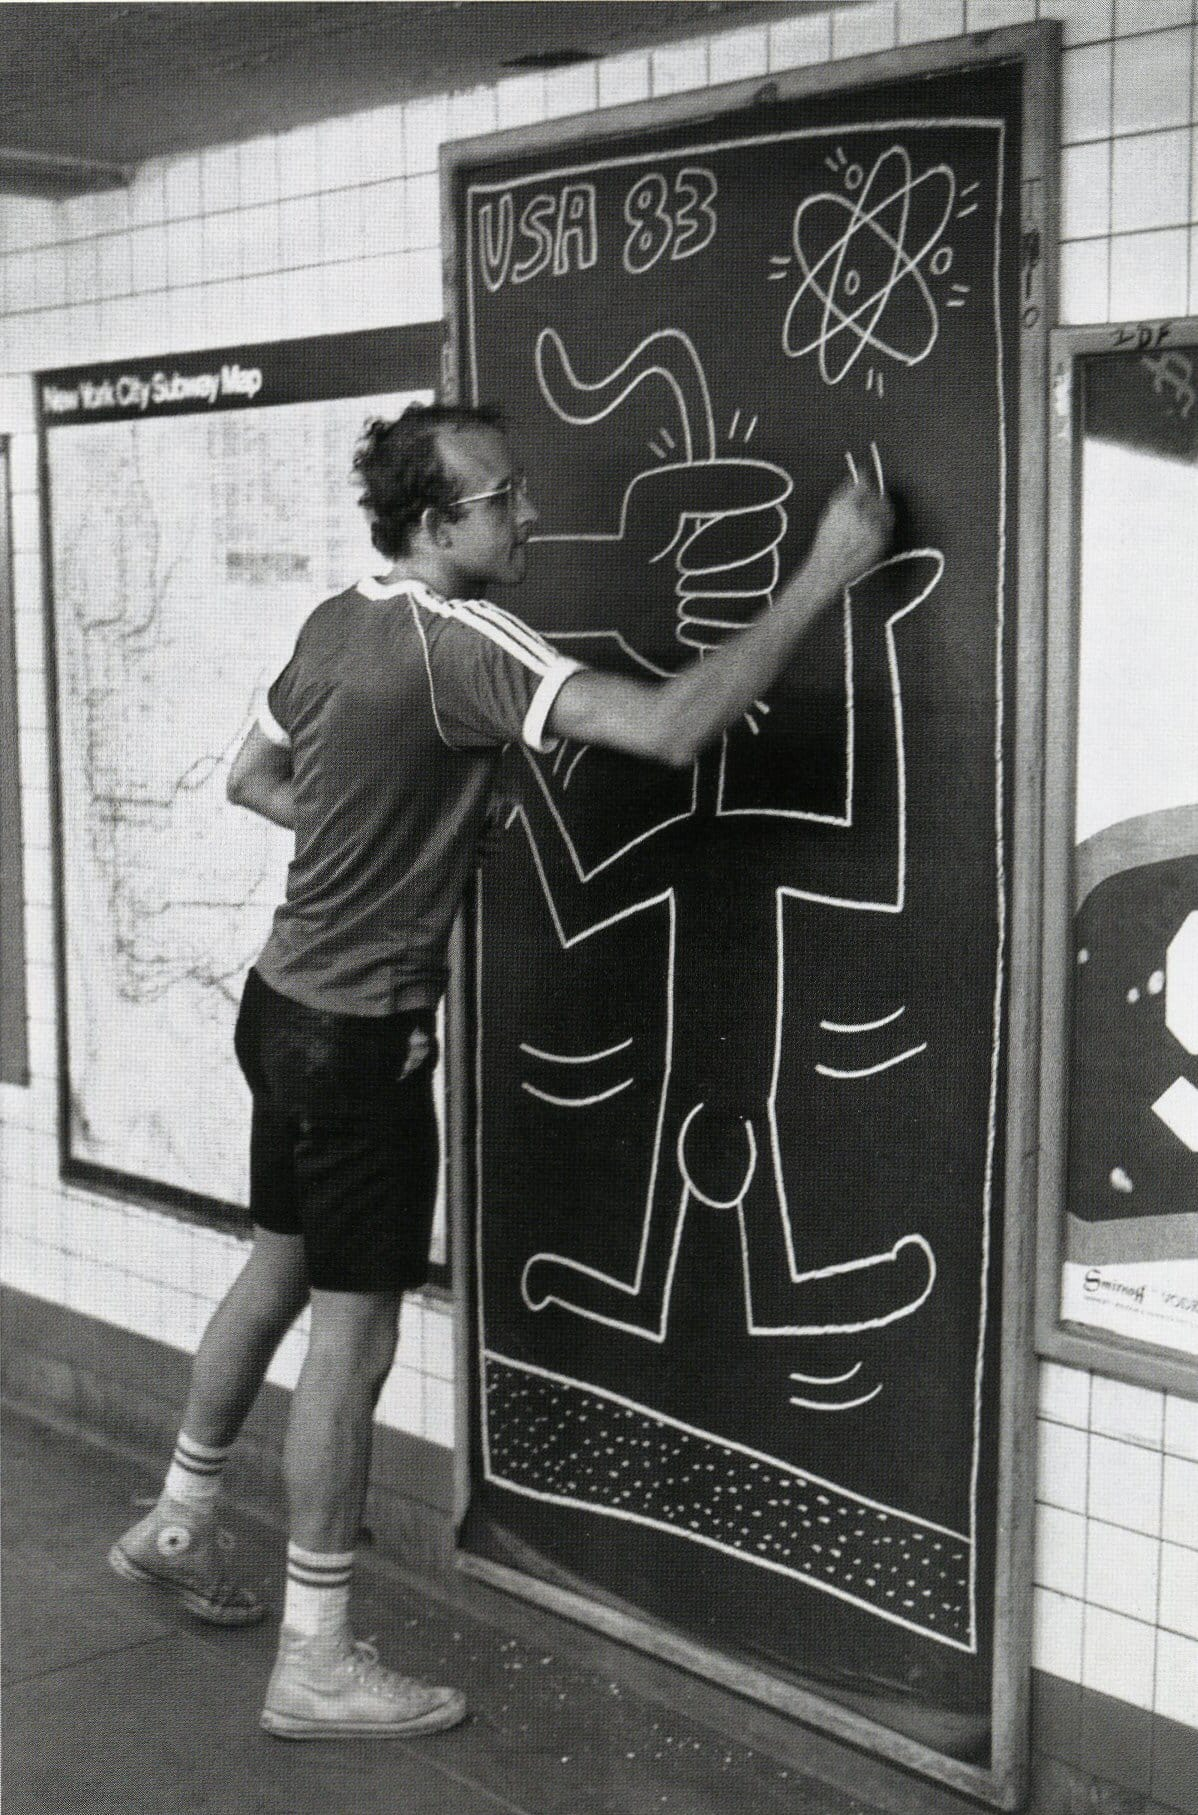 Keith Haring subway